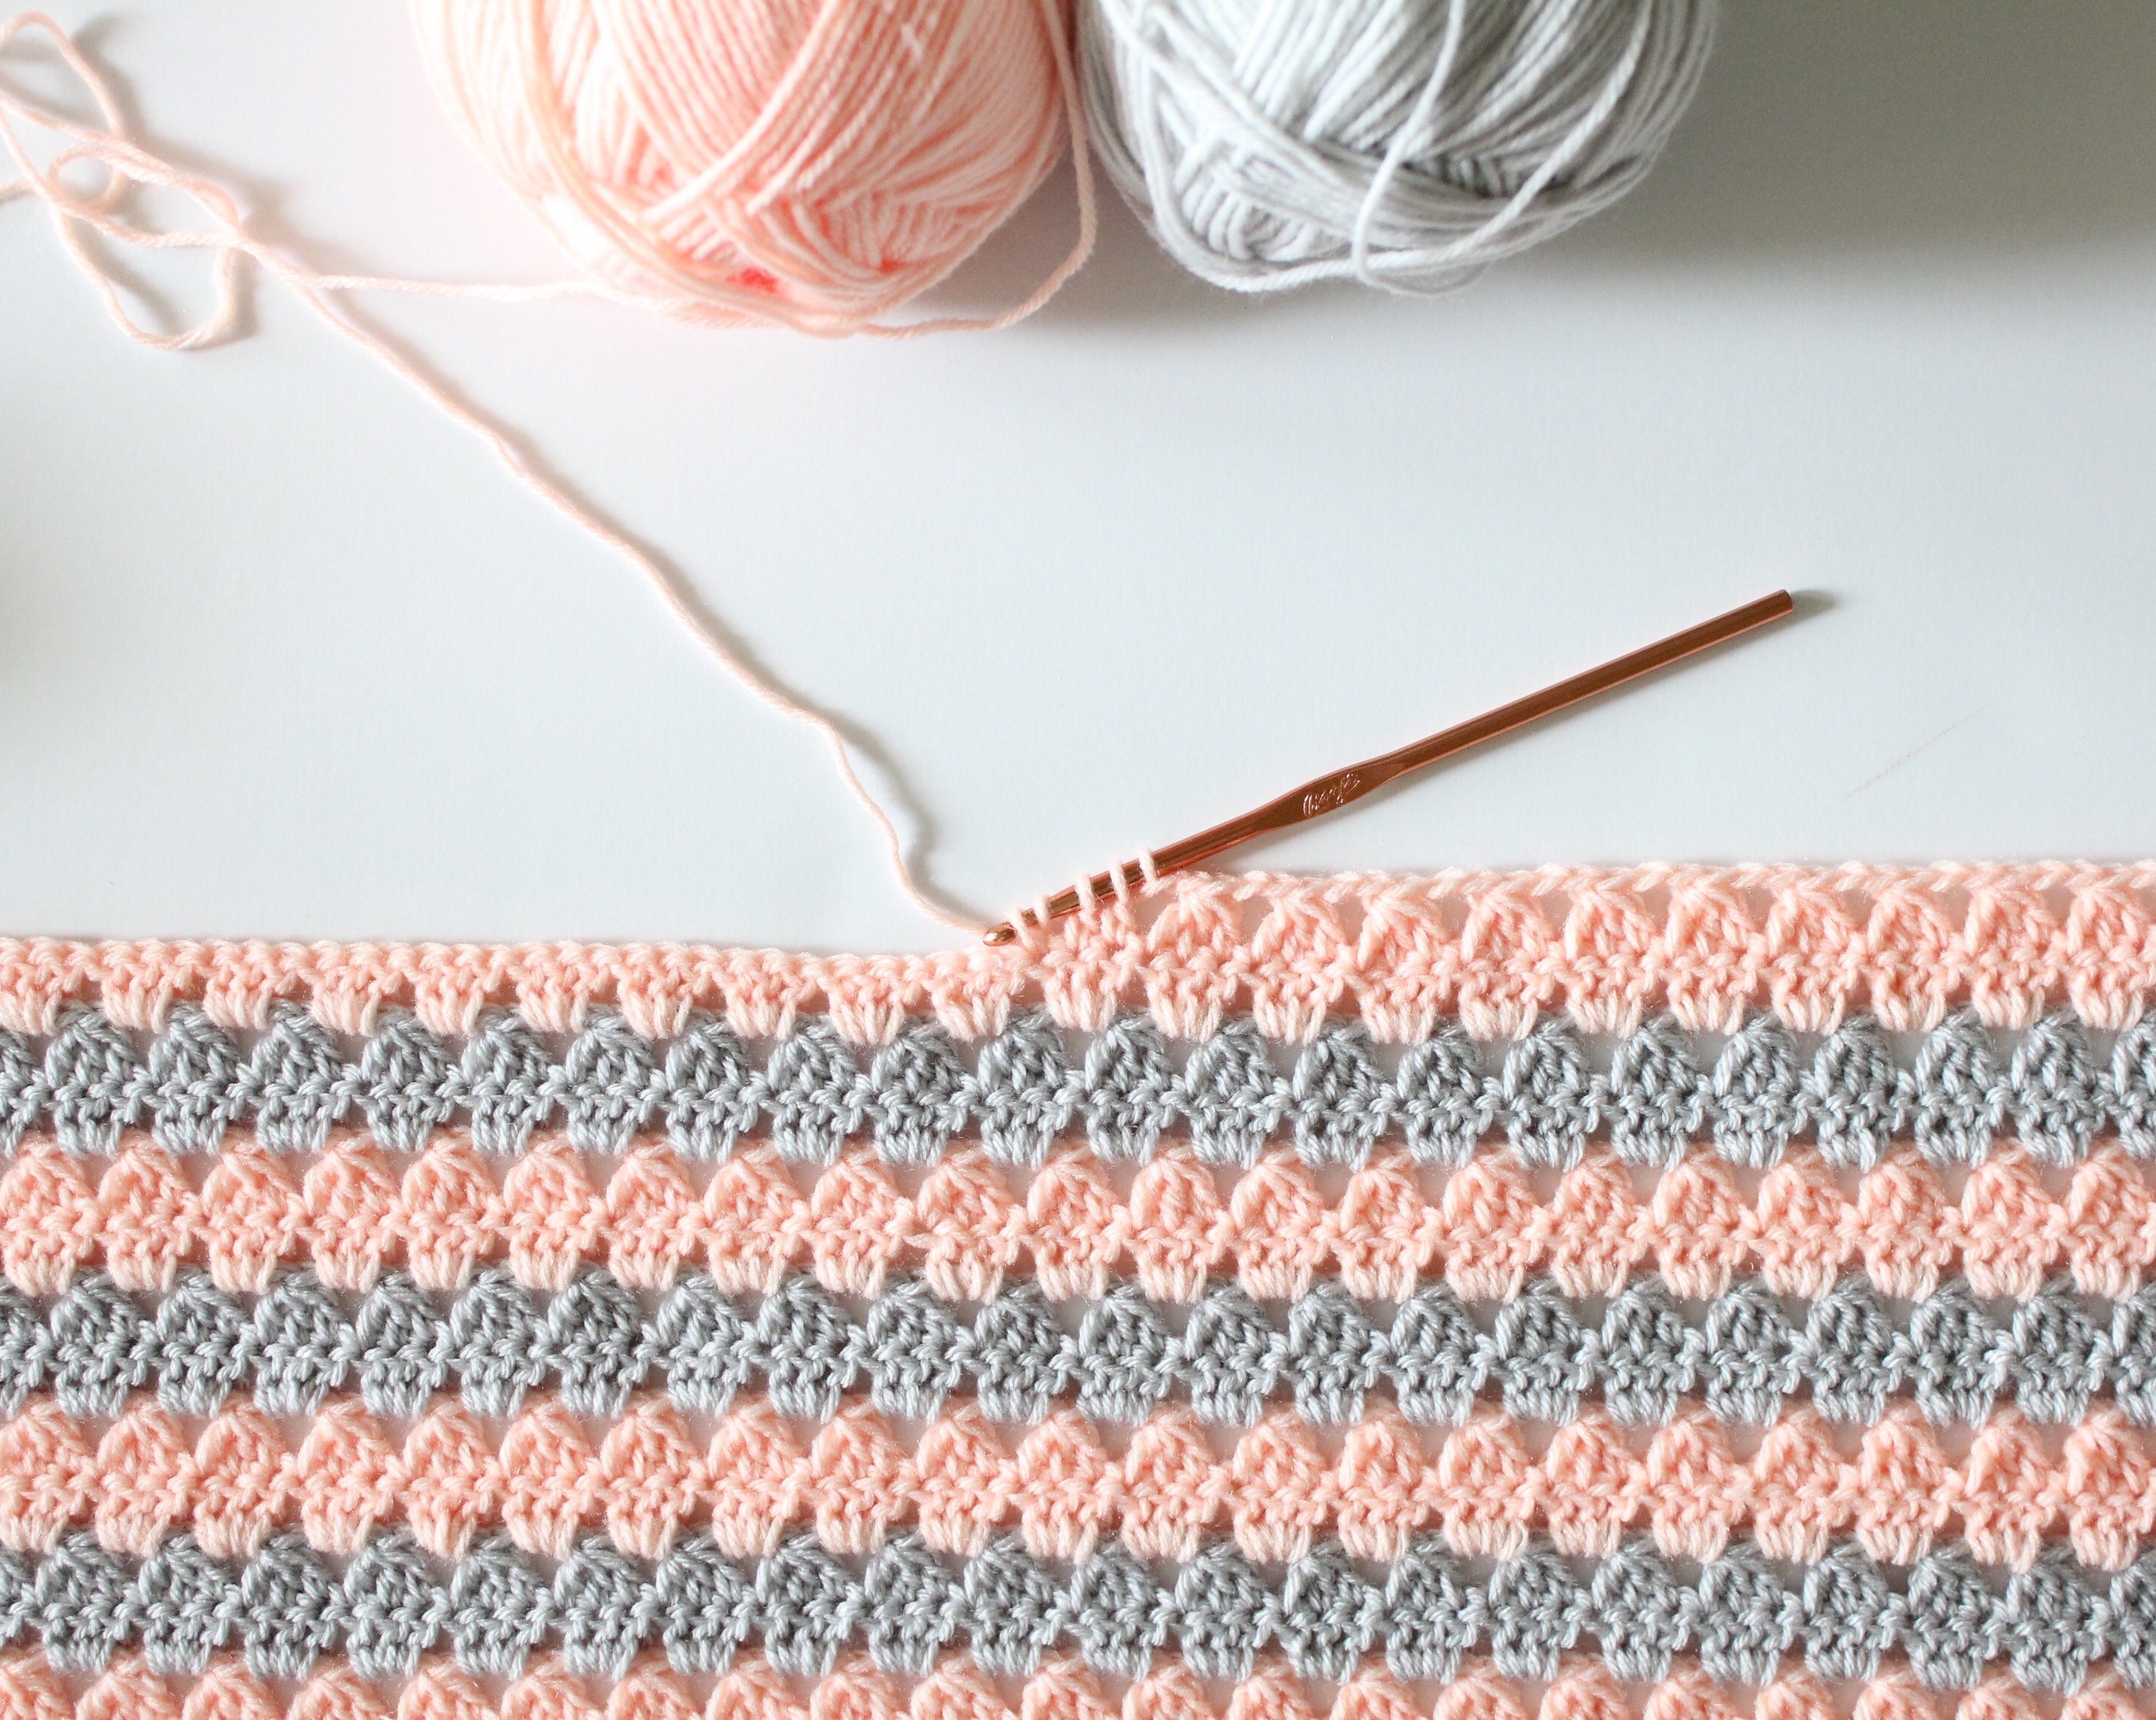 Crochet Modern Granny Blanket In Peach And Grey Daisy Farm Crafts